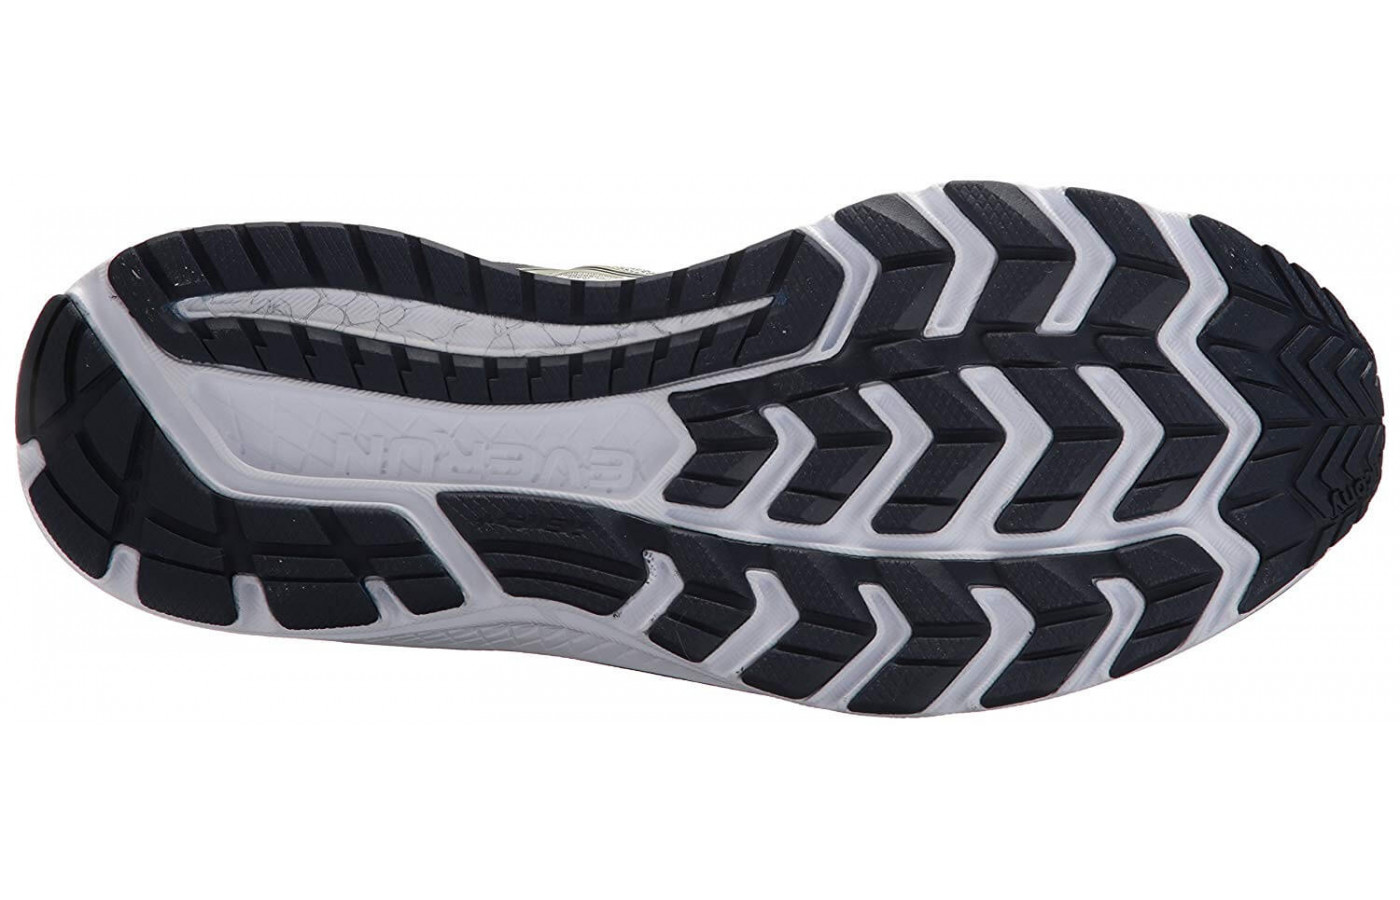 The Saucony Guide ISO offers great traction